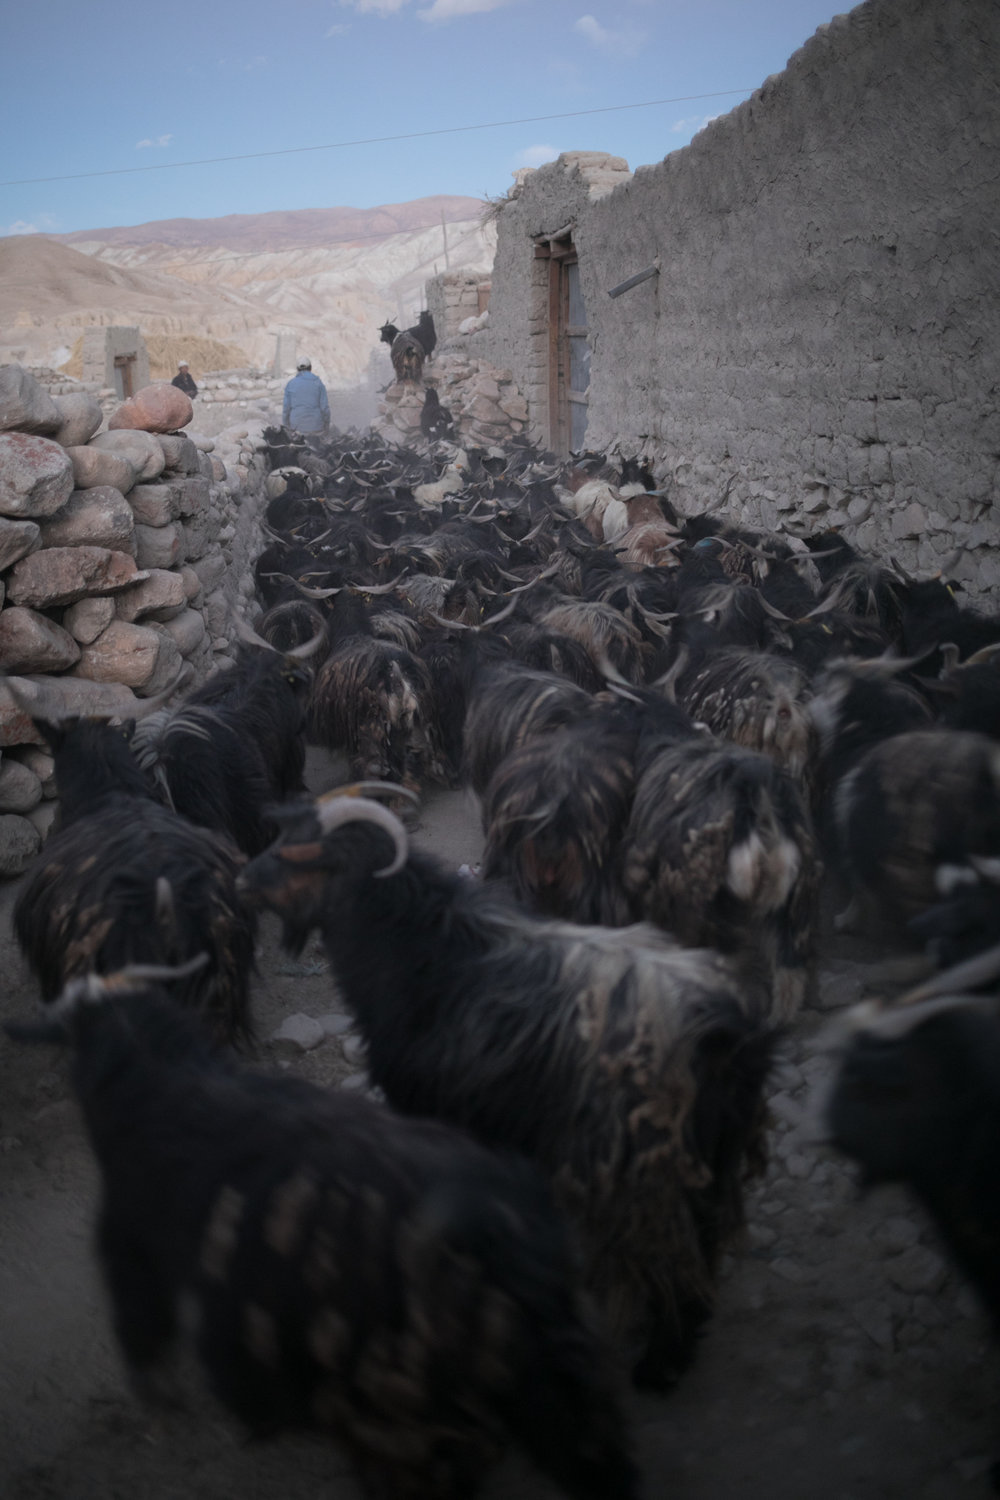 Goats returning to Lo Manthang in the evening.